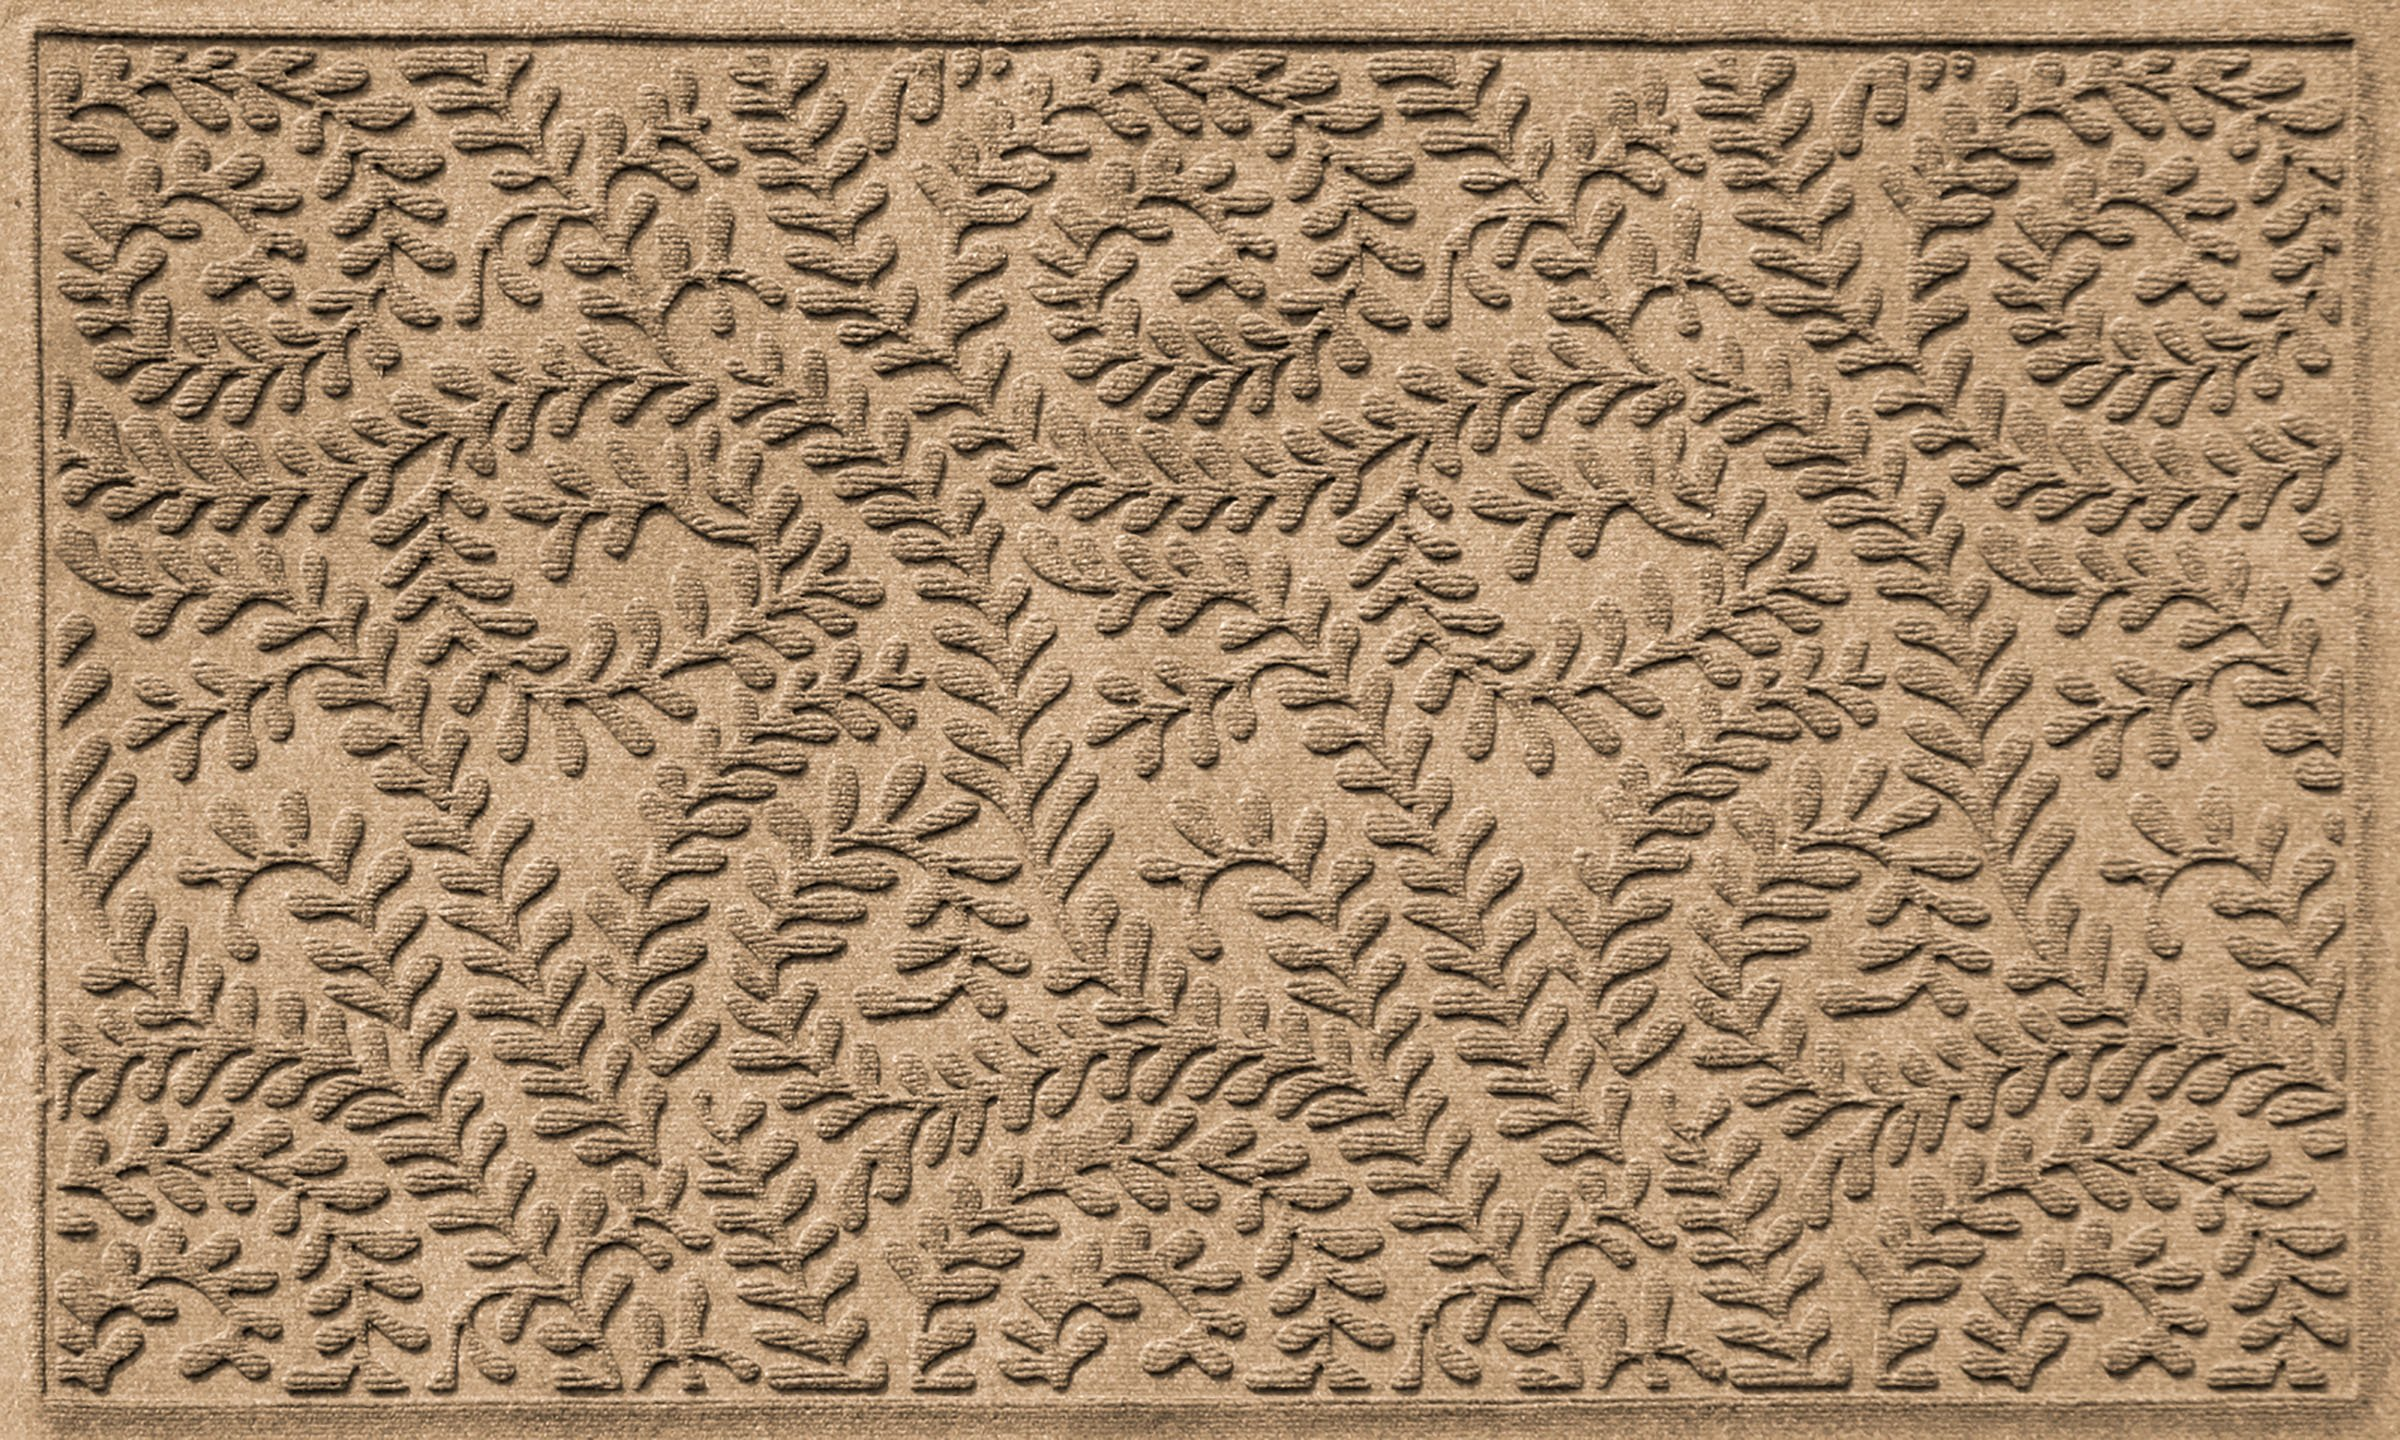 Bungalow Flooring Waterhog Doormat, 3' x 5', Skid Resistant, Easy to Clean, Catches Water and Debris, Boxwood Collection, Khaki